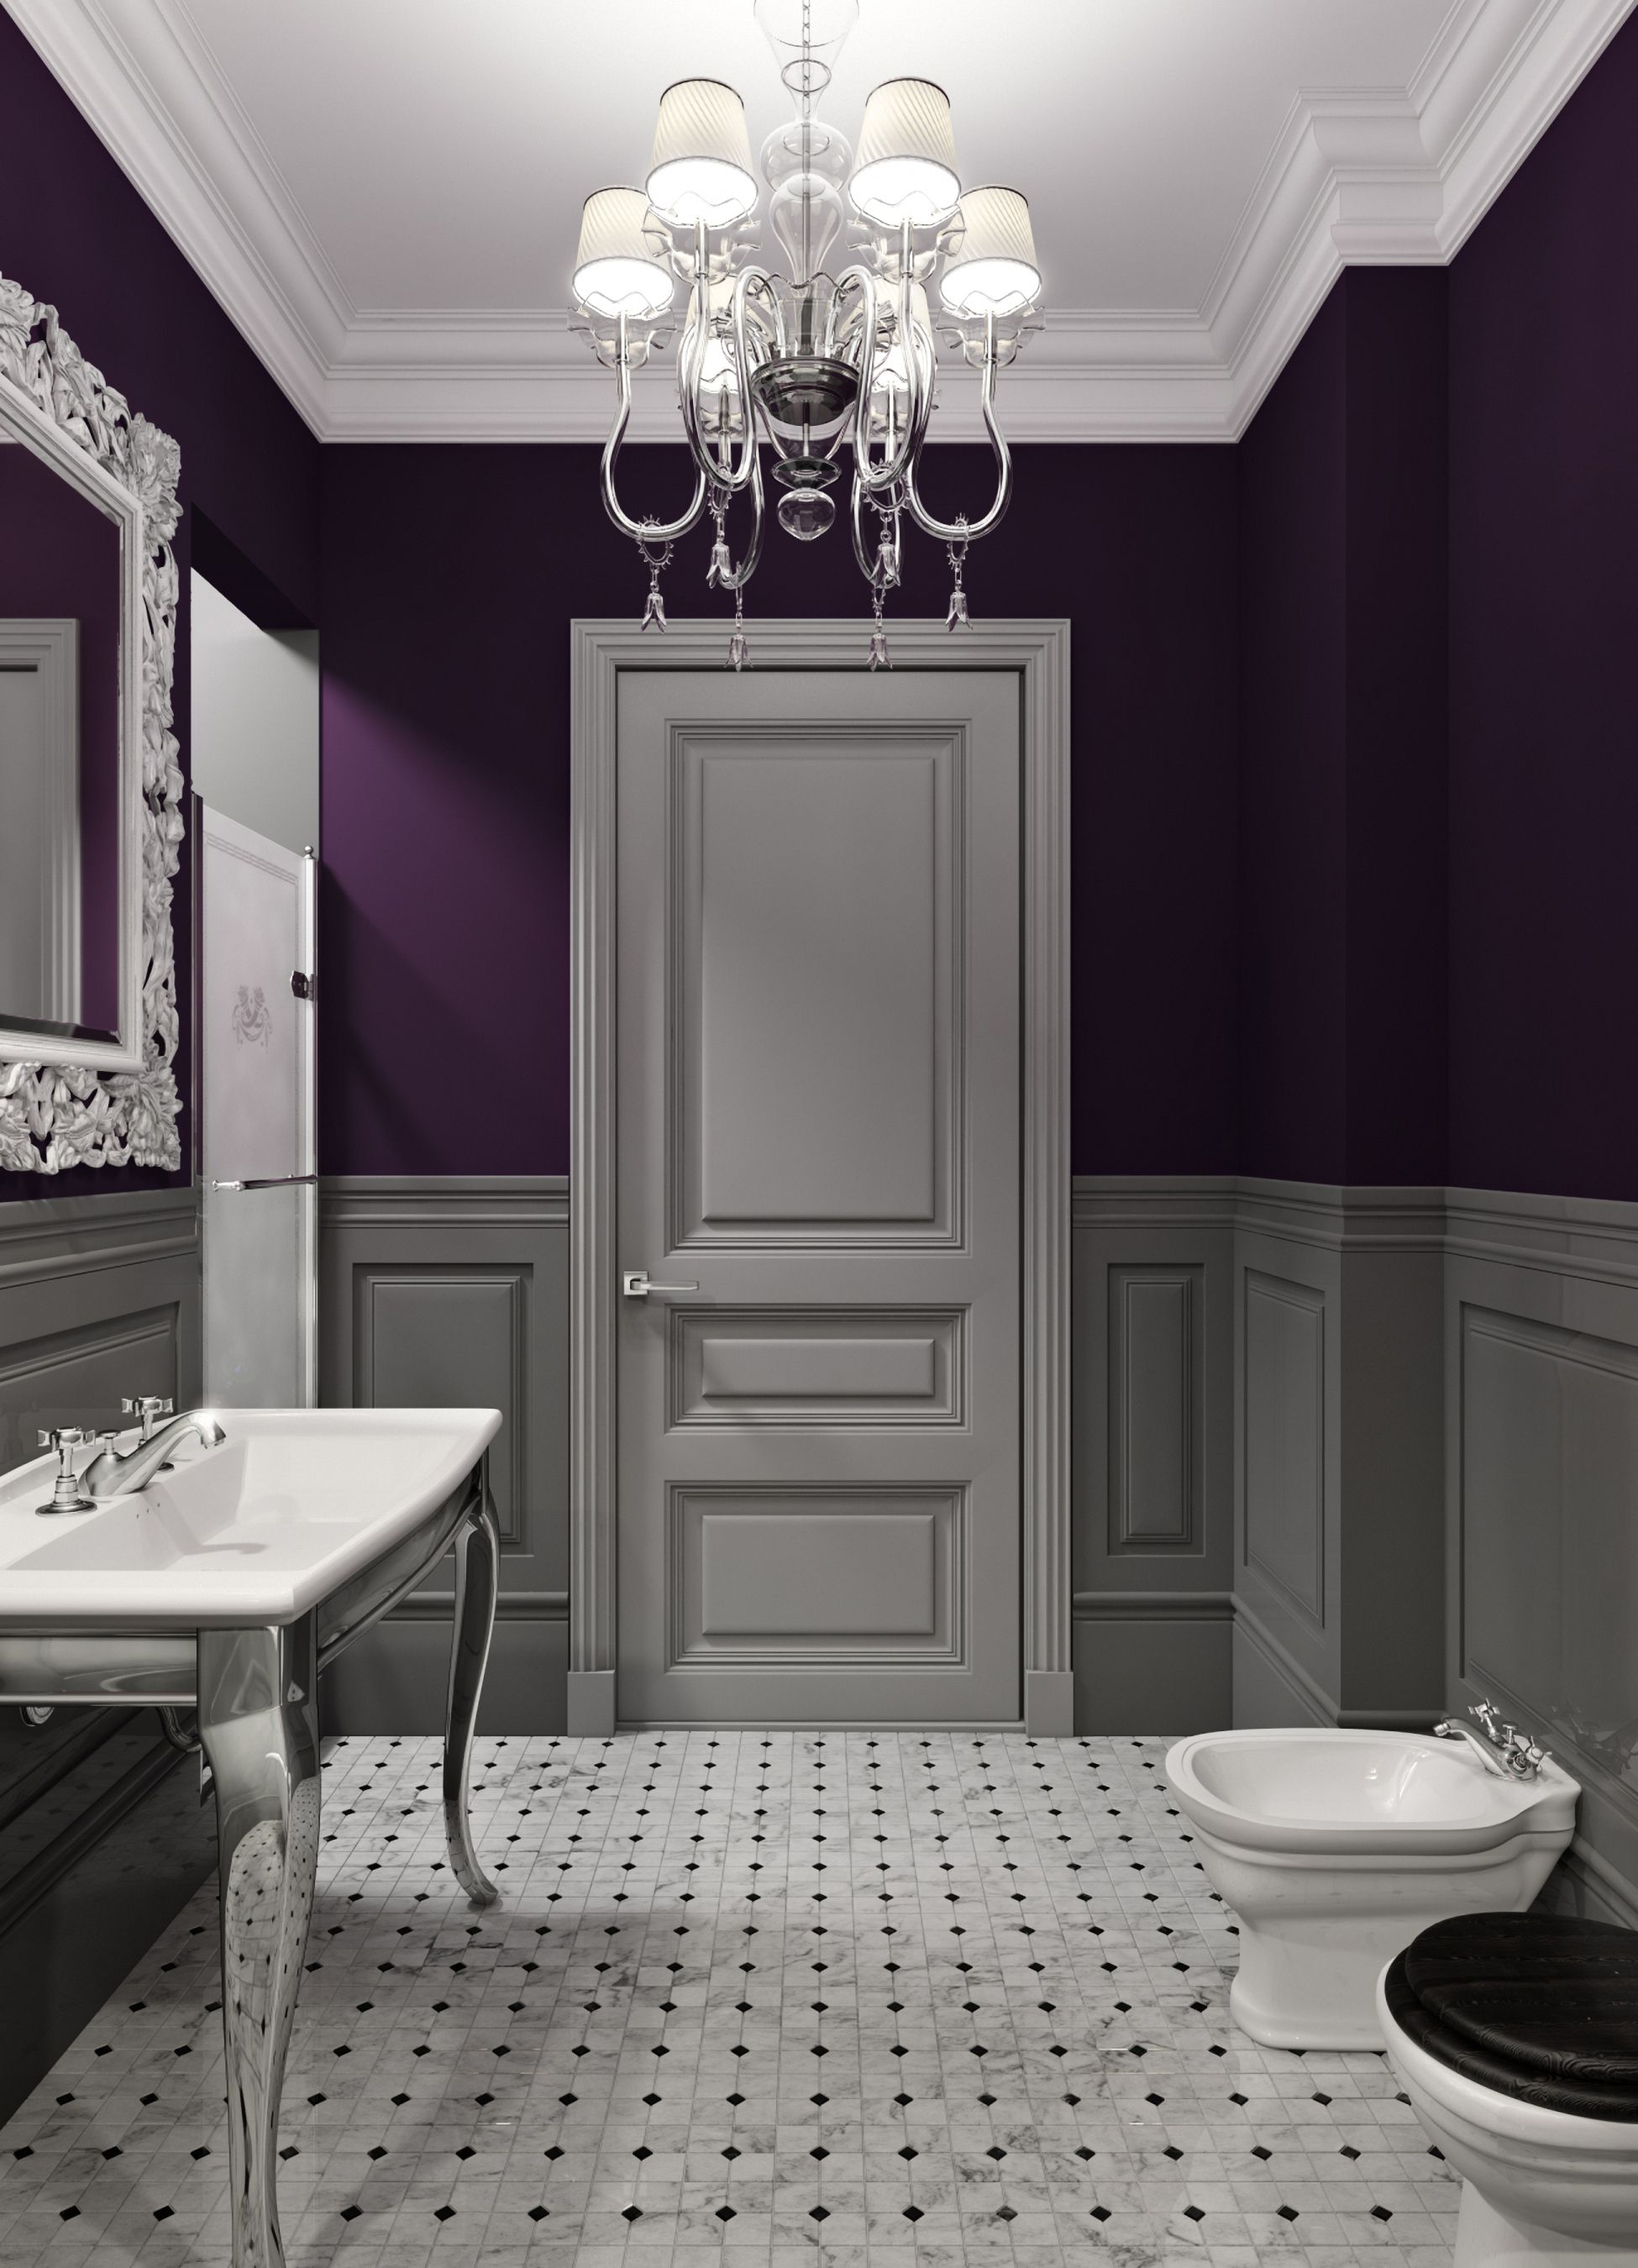 Purple Is A Very Victorian Color And With This Renovation The Color Works Beautifully By Keeping The Old Purple Bathrooms Small Bathroom Decor Bathroom Colors